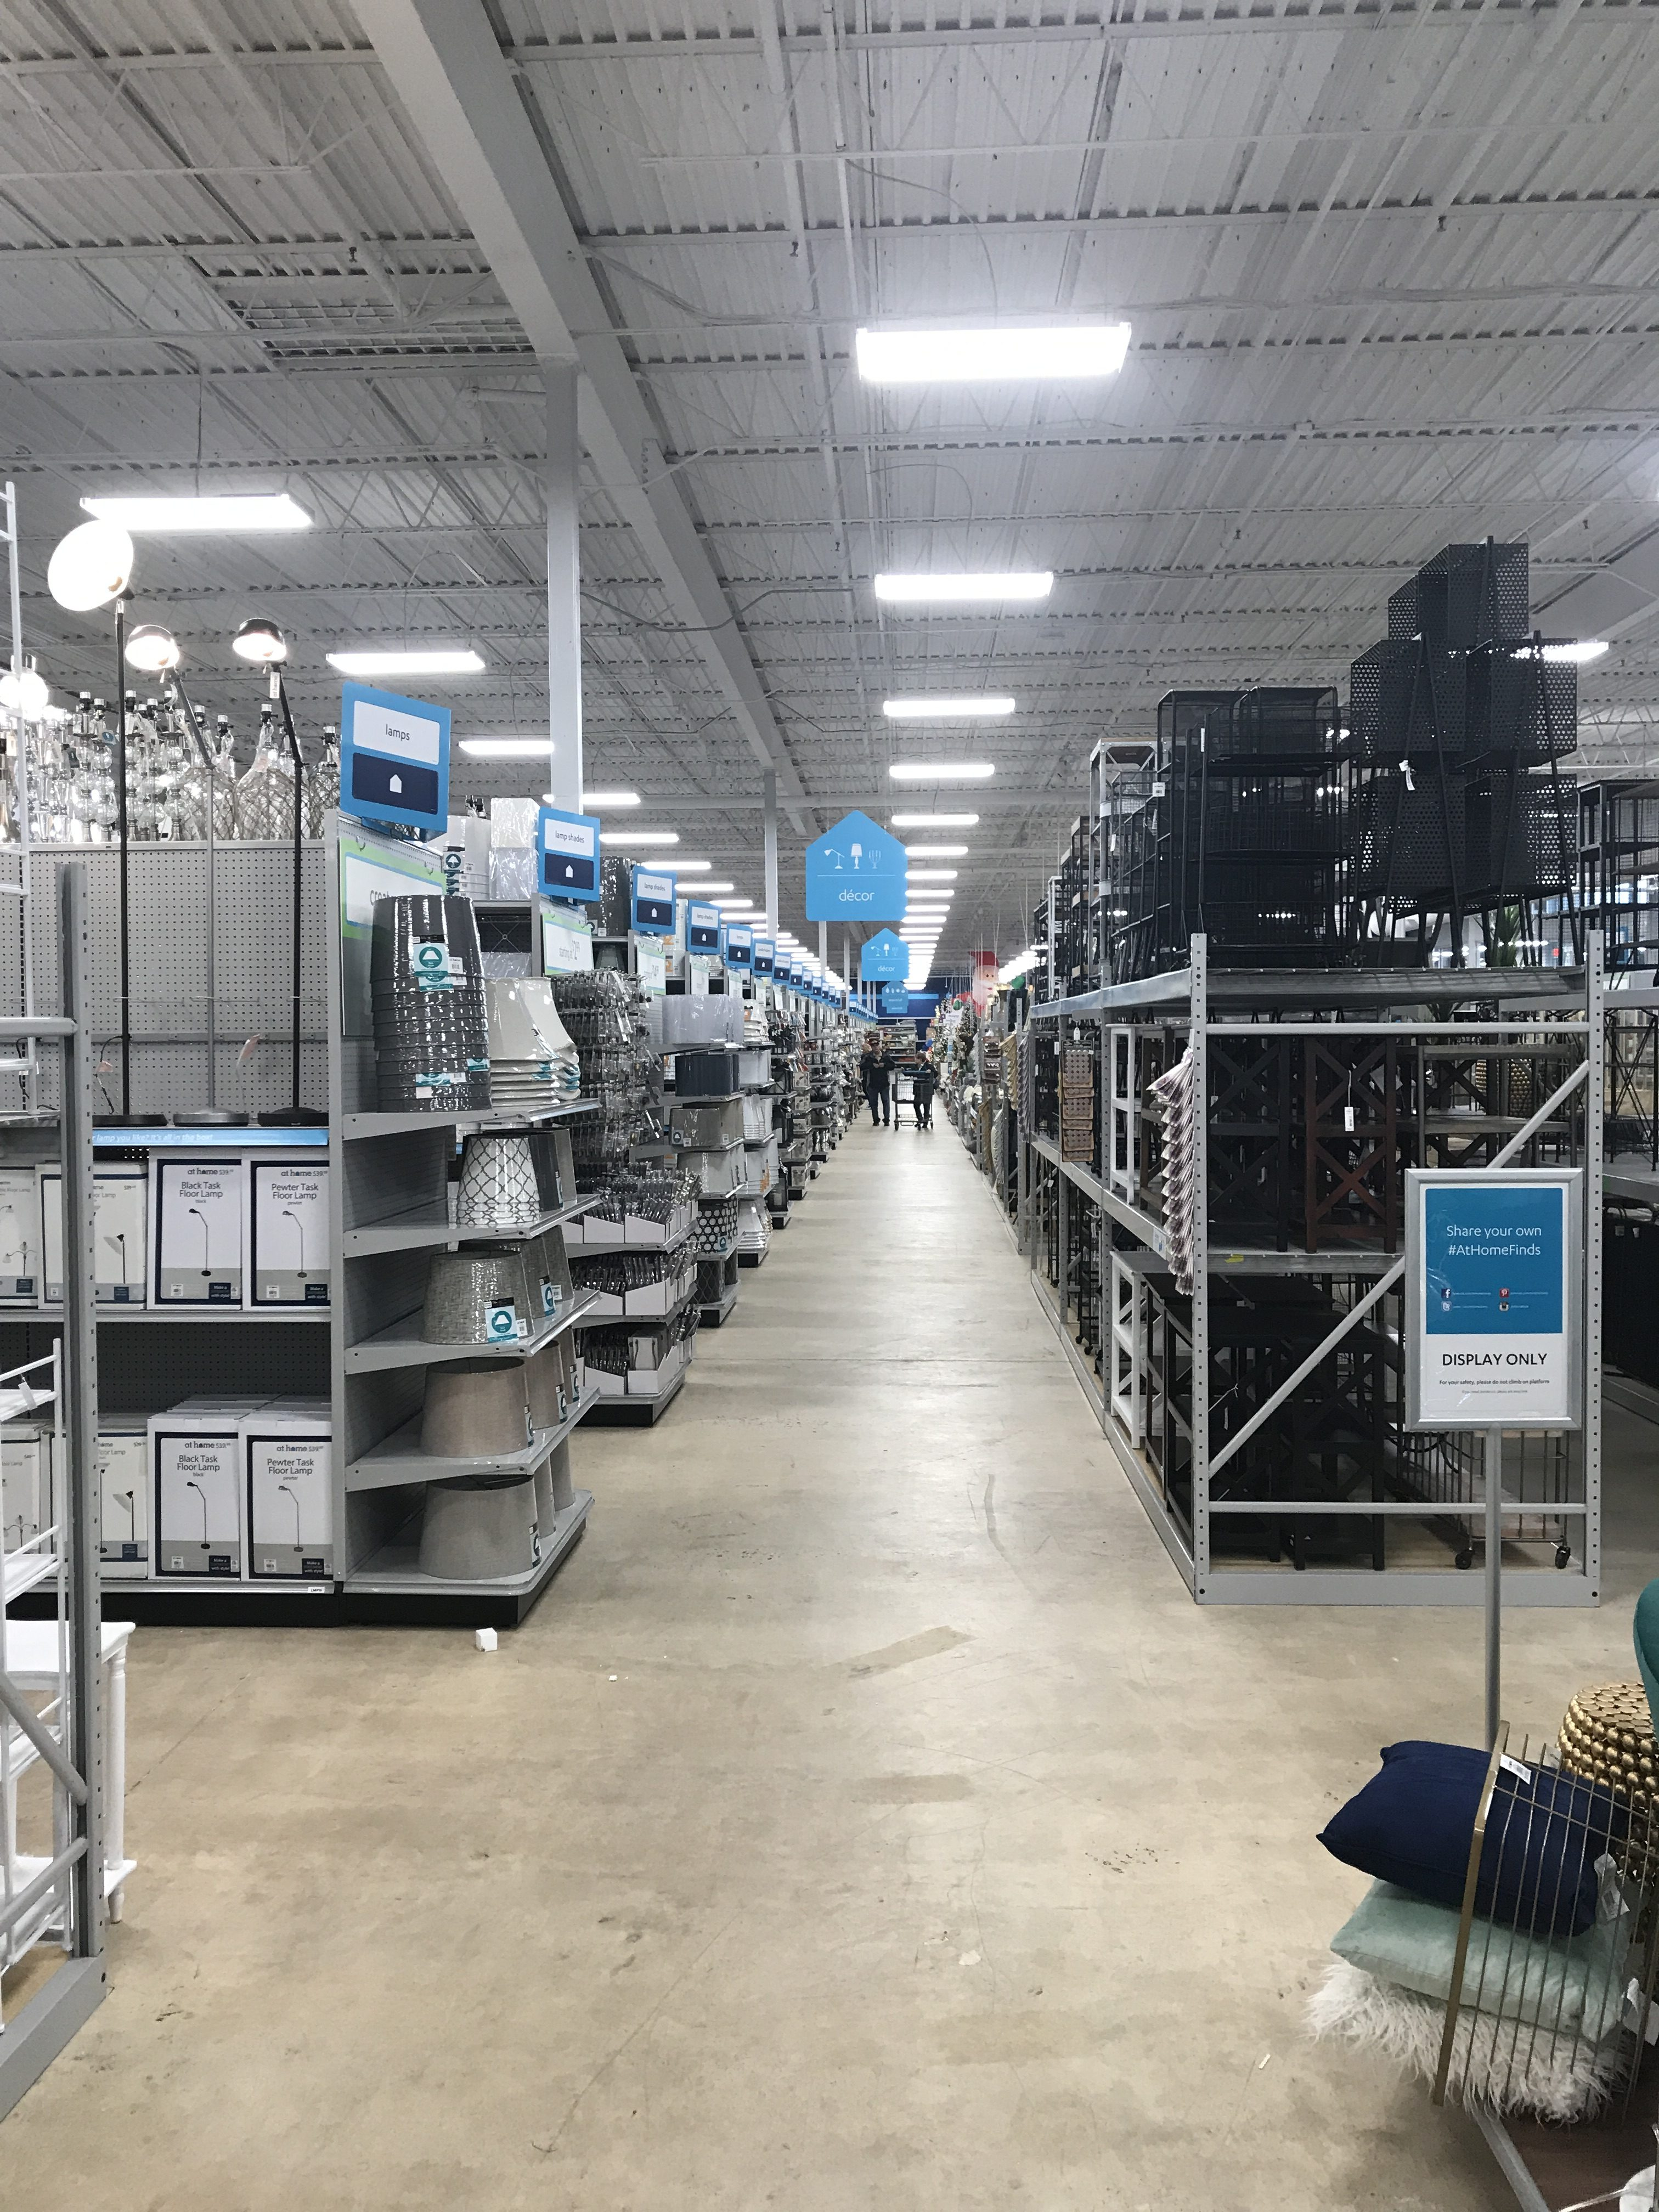 The At Home Store In Brick Township NJ Nov 20 2018